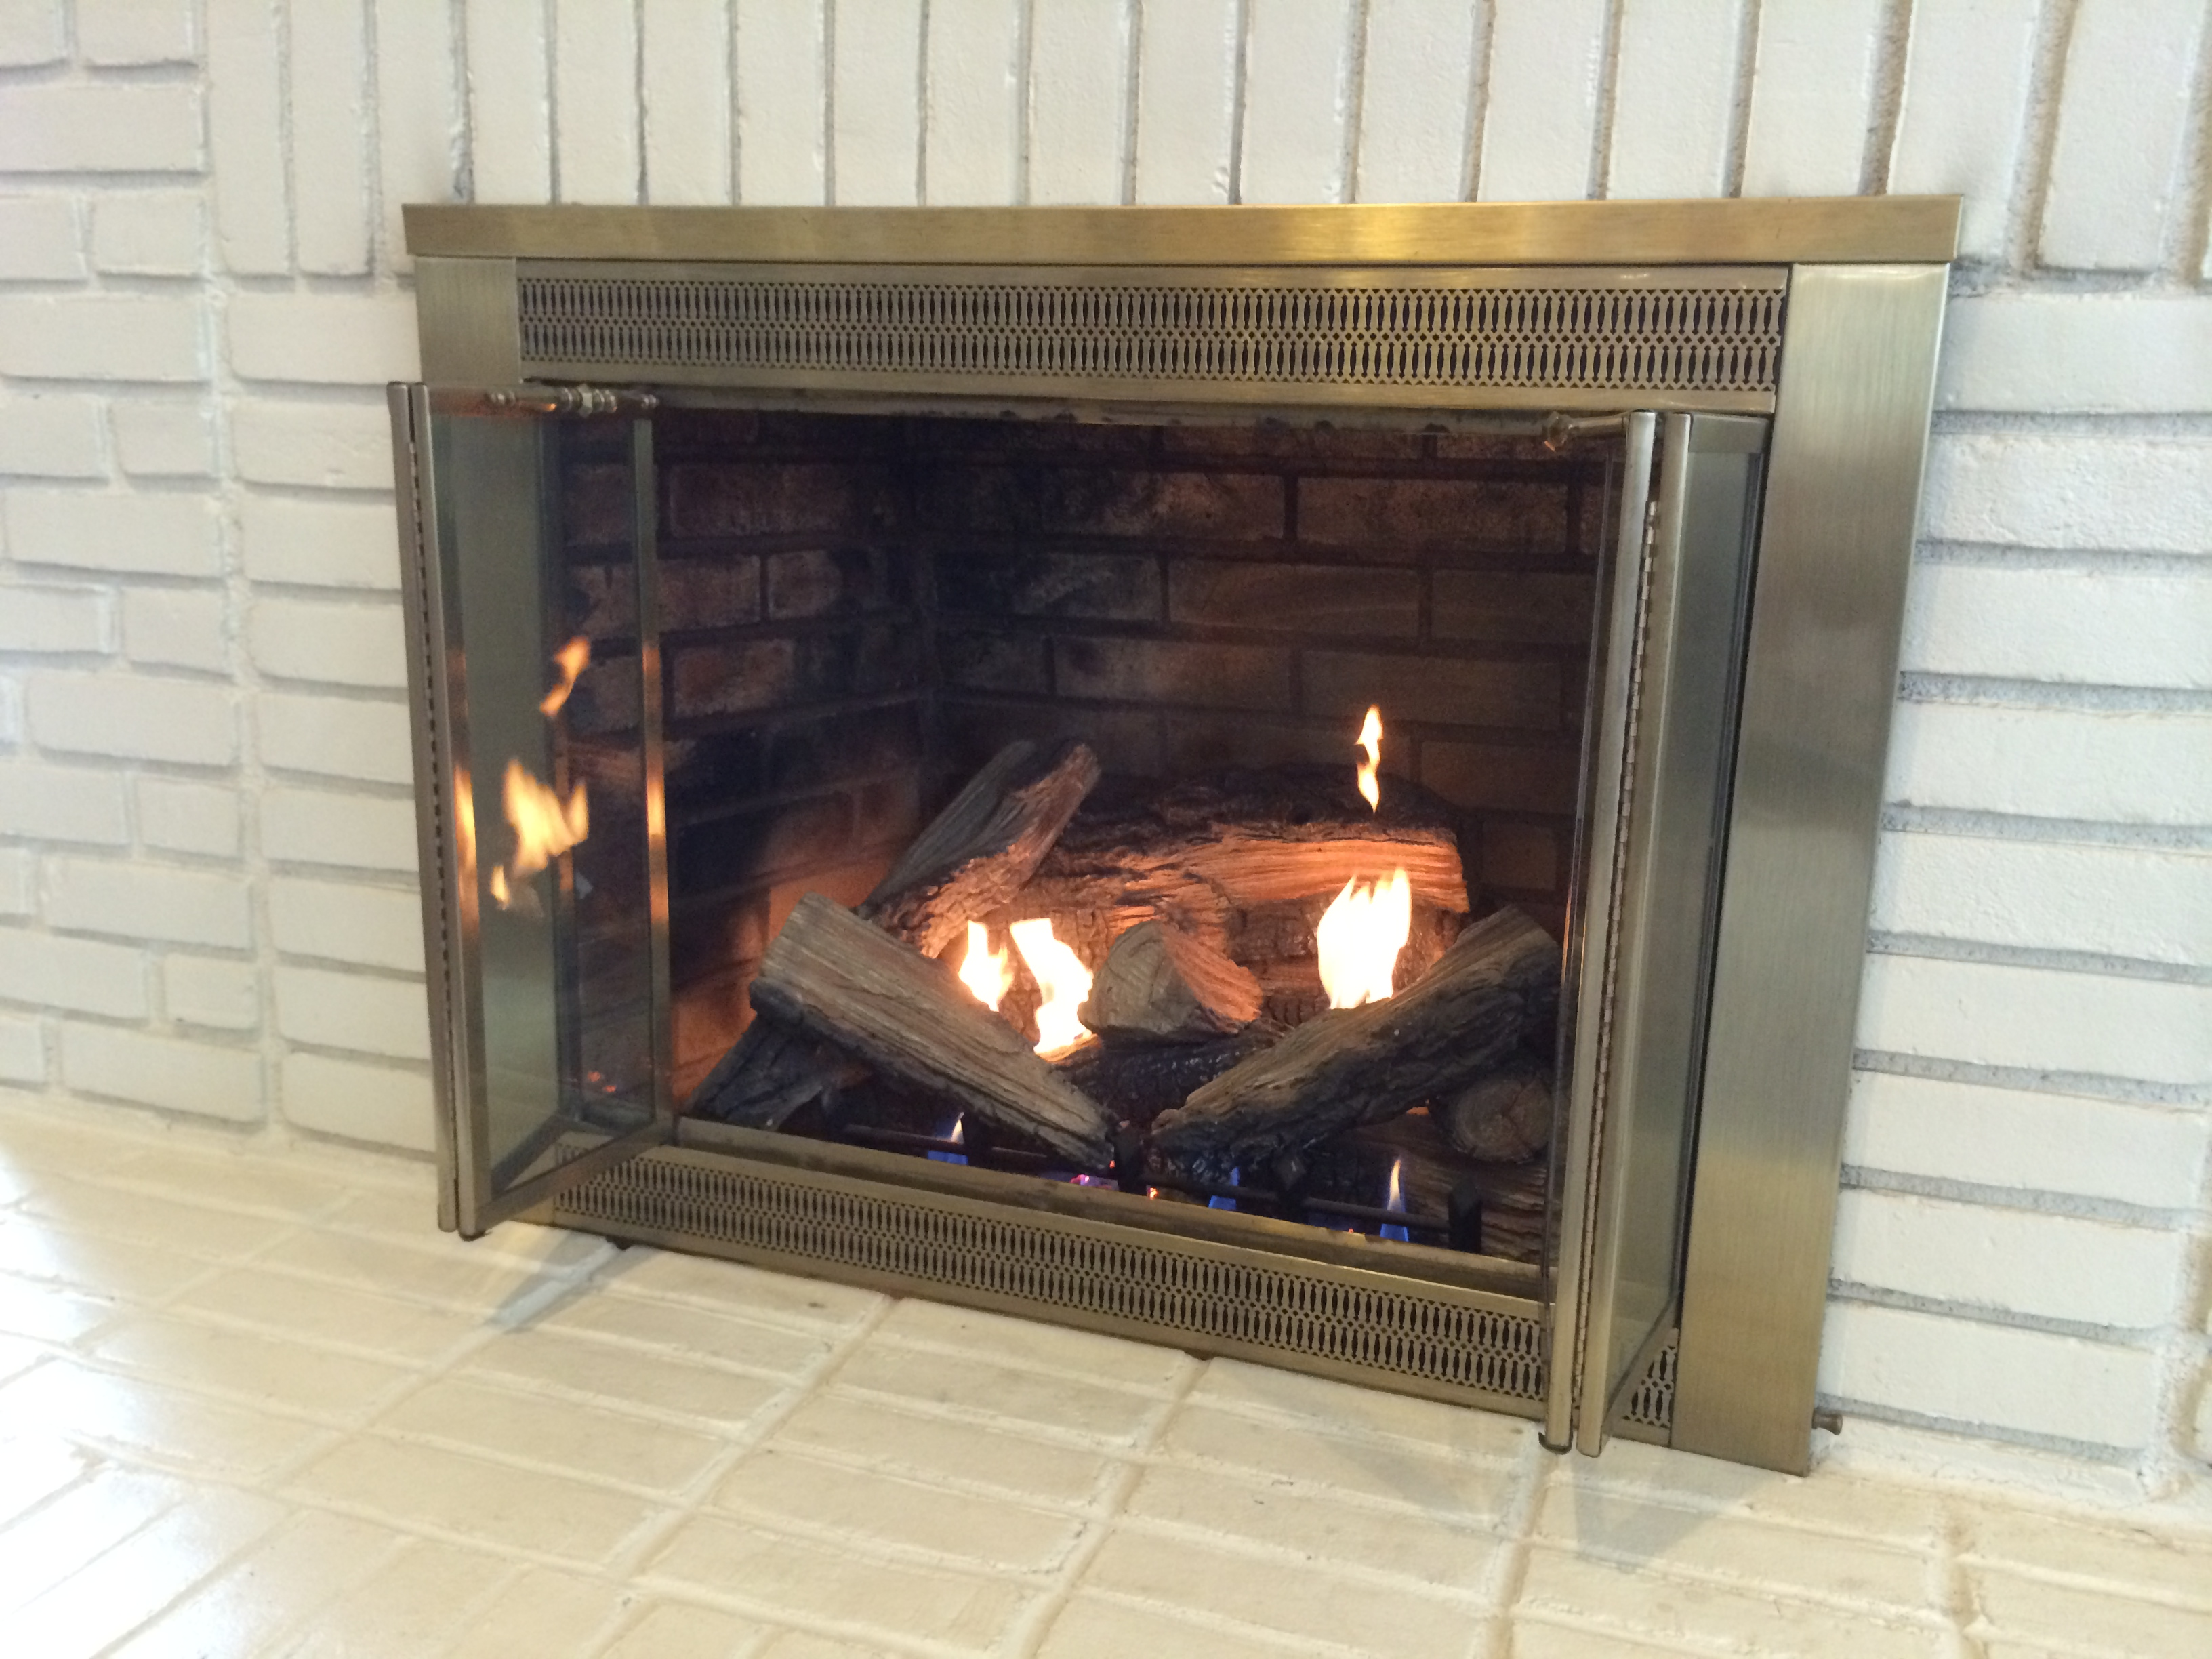 Ventless Fireplace Insert Takes The Chill Off Winter